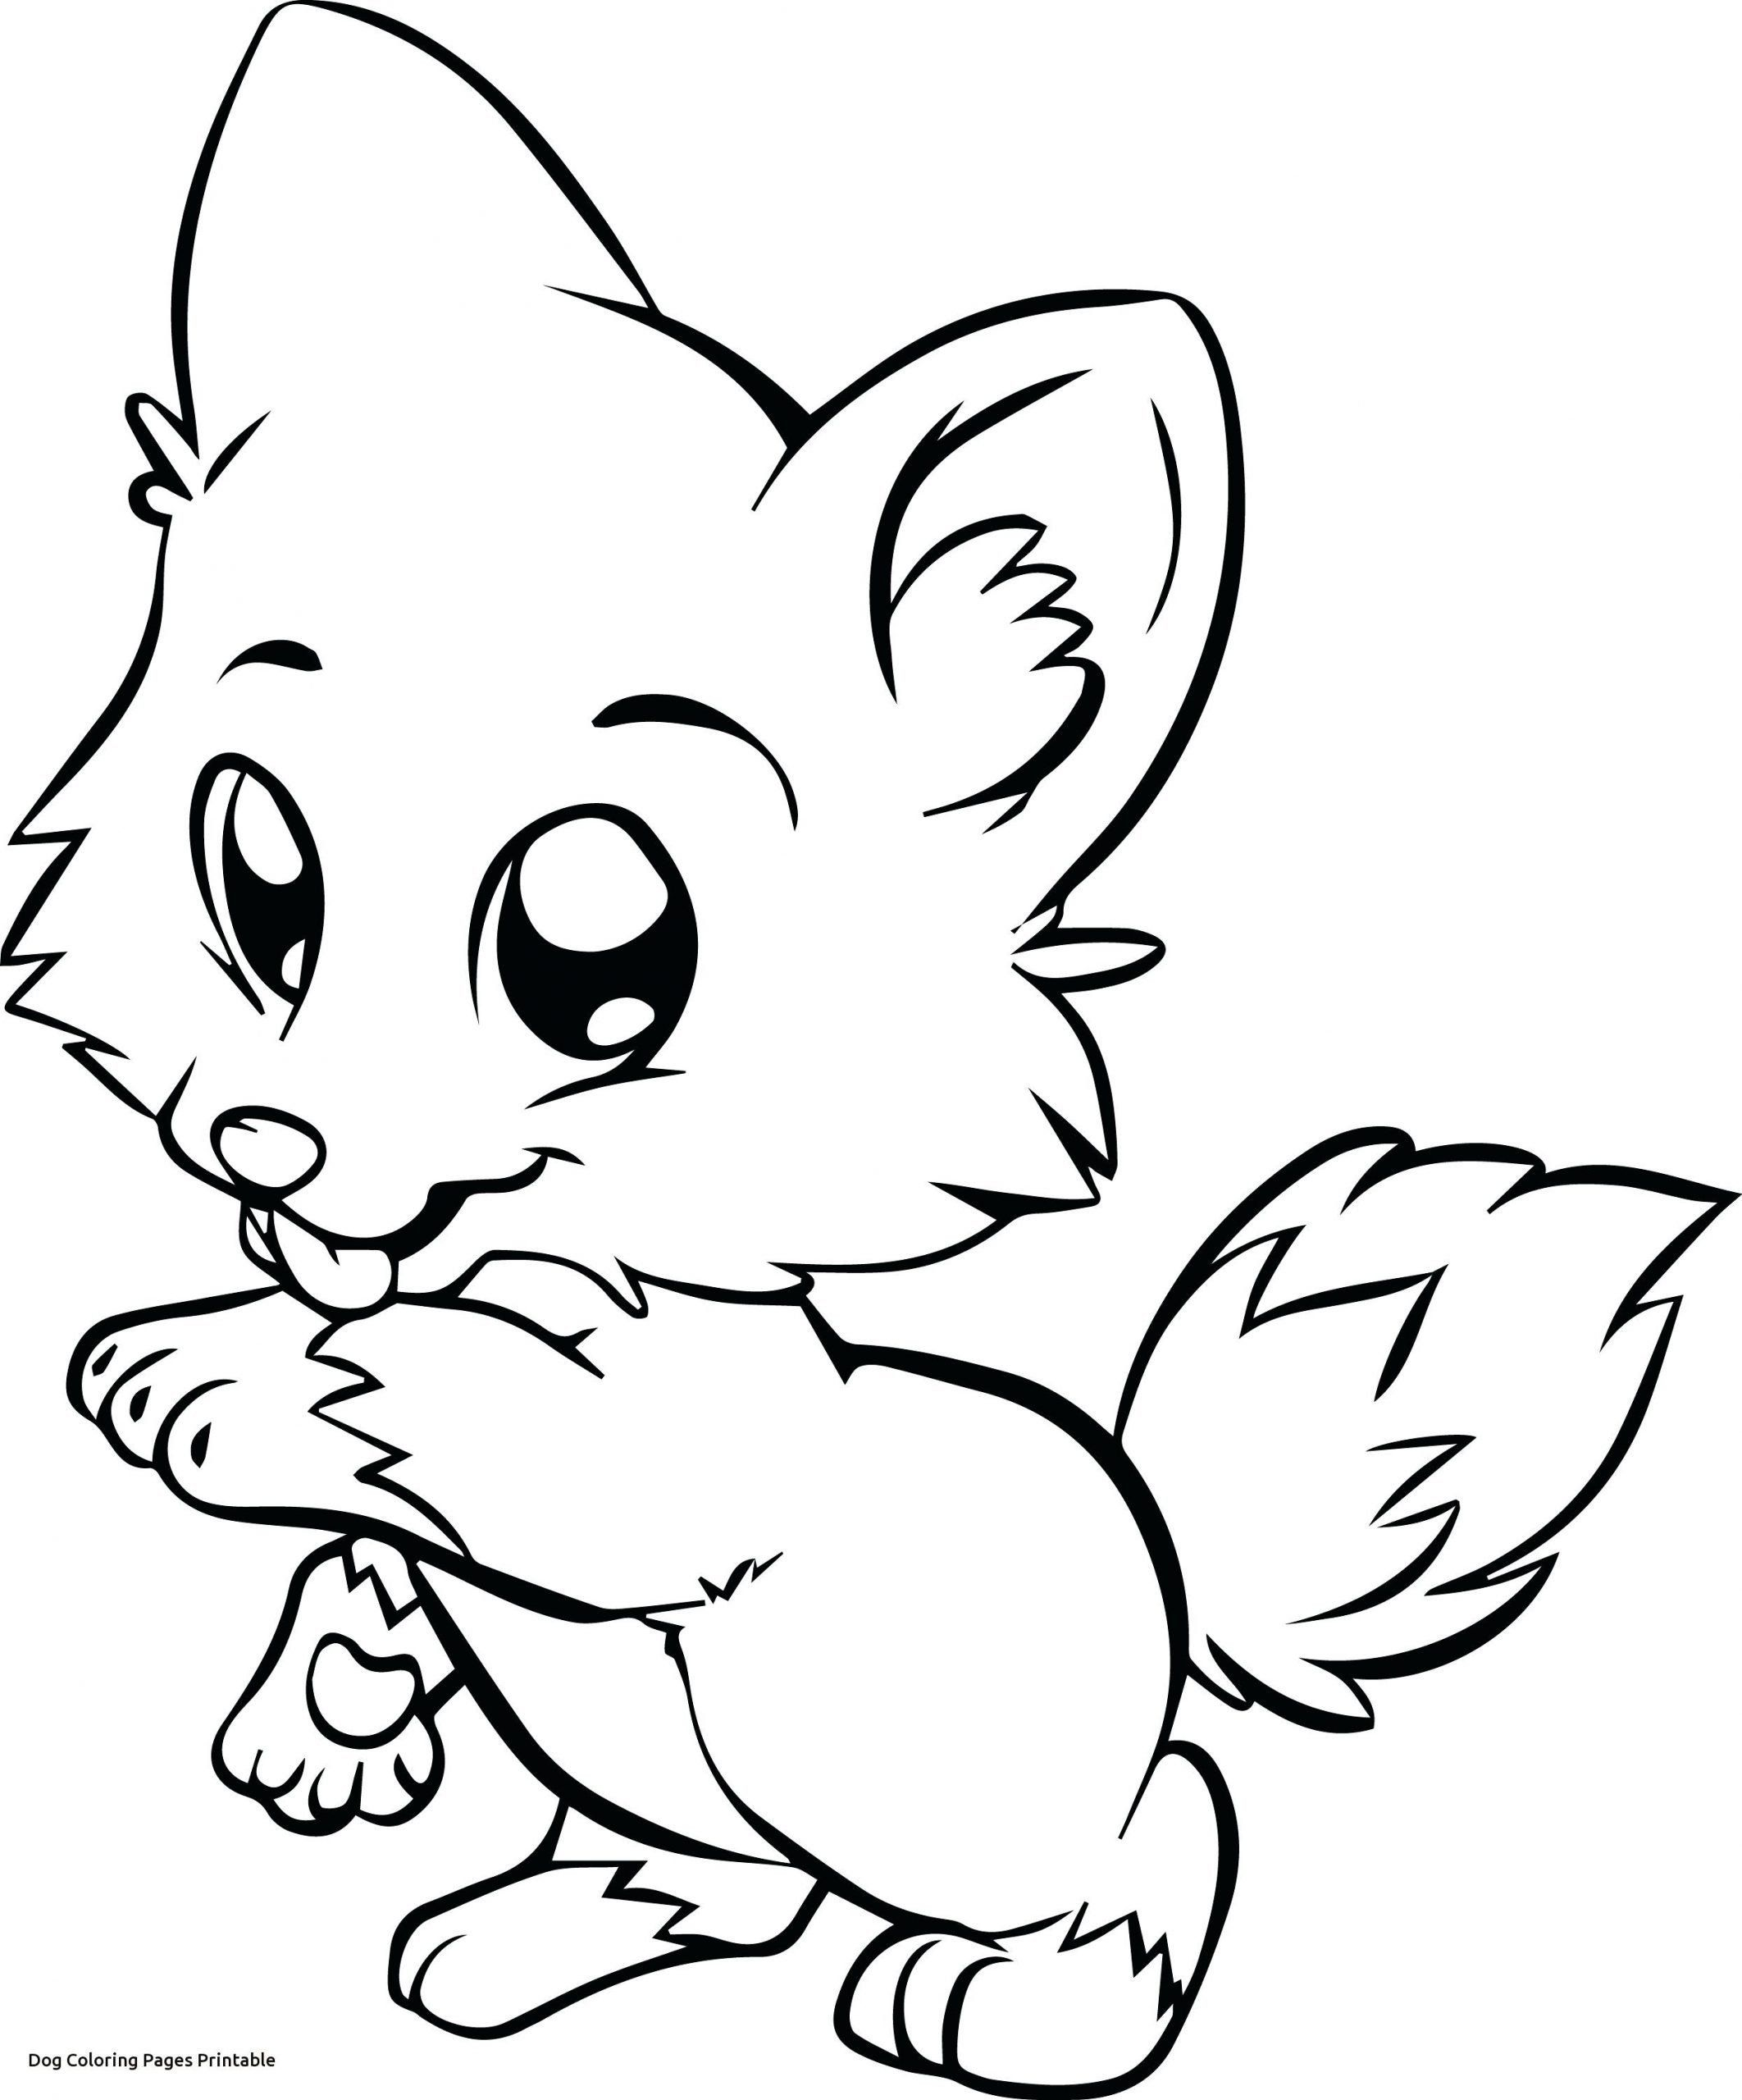 Free Dog Coloring Pages Printable Husky Dog Coloring Pages Unicorn Coloring Pages Fox Coloring Page Animal Coloring Pages [ 2560 x 2124 Pixel ]